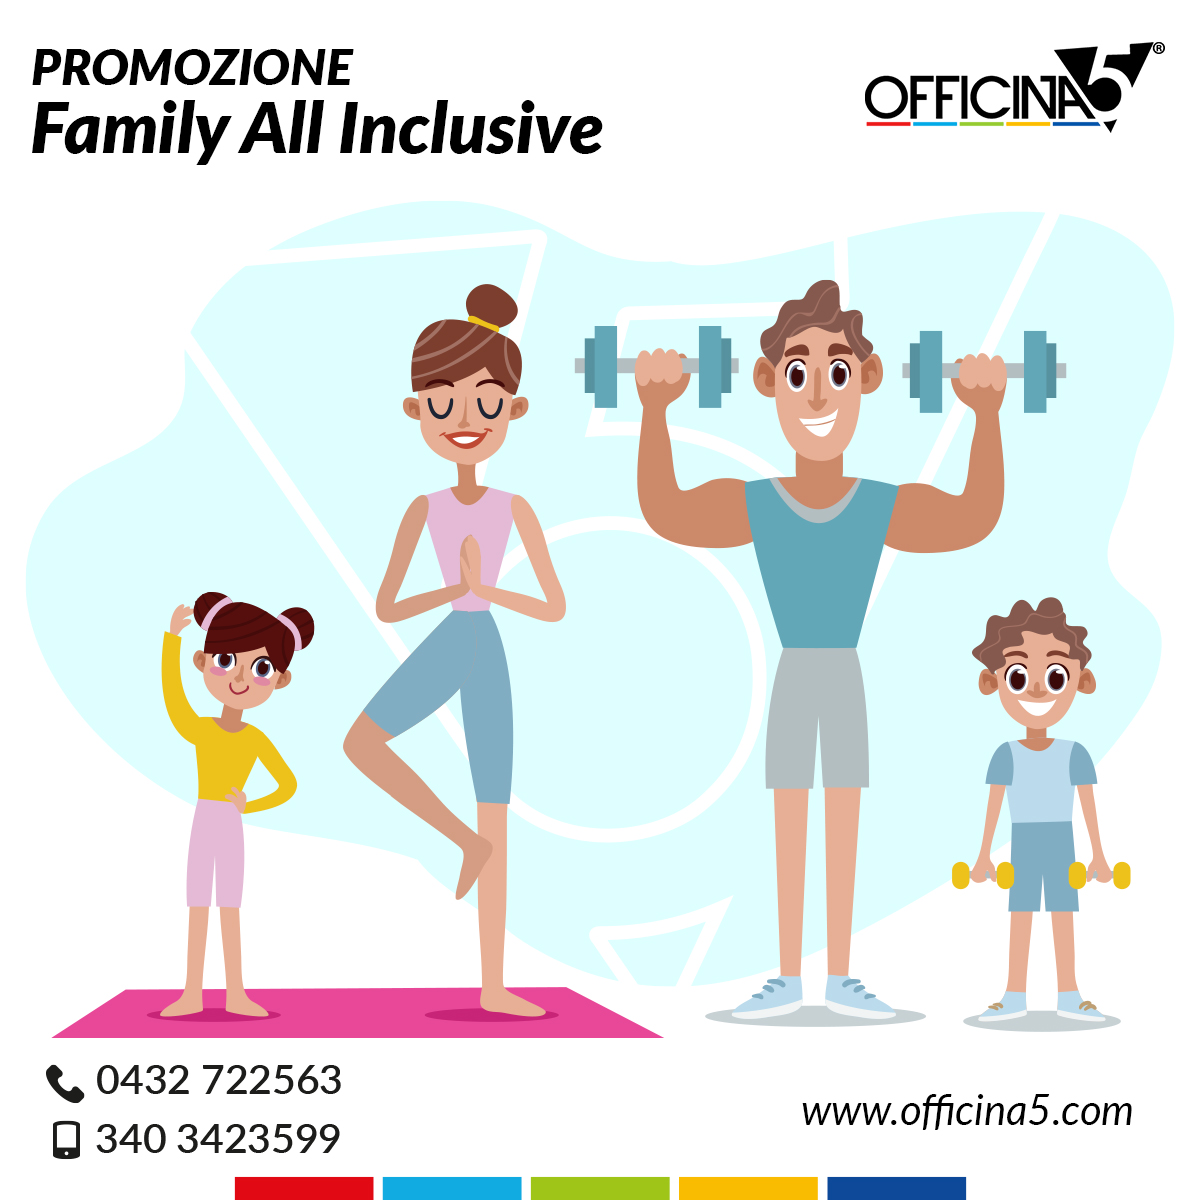 promo Family All Inclusive